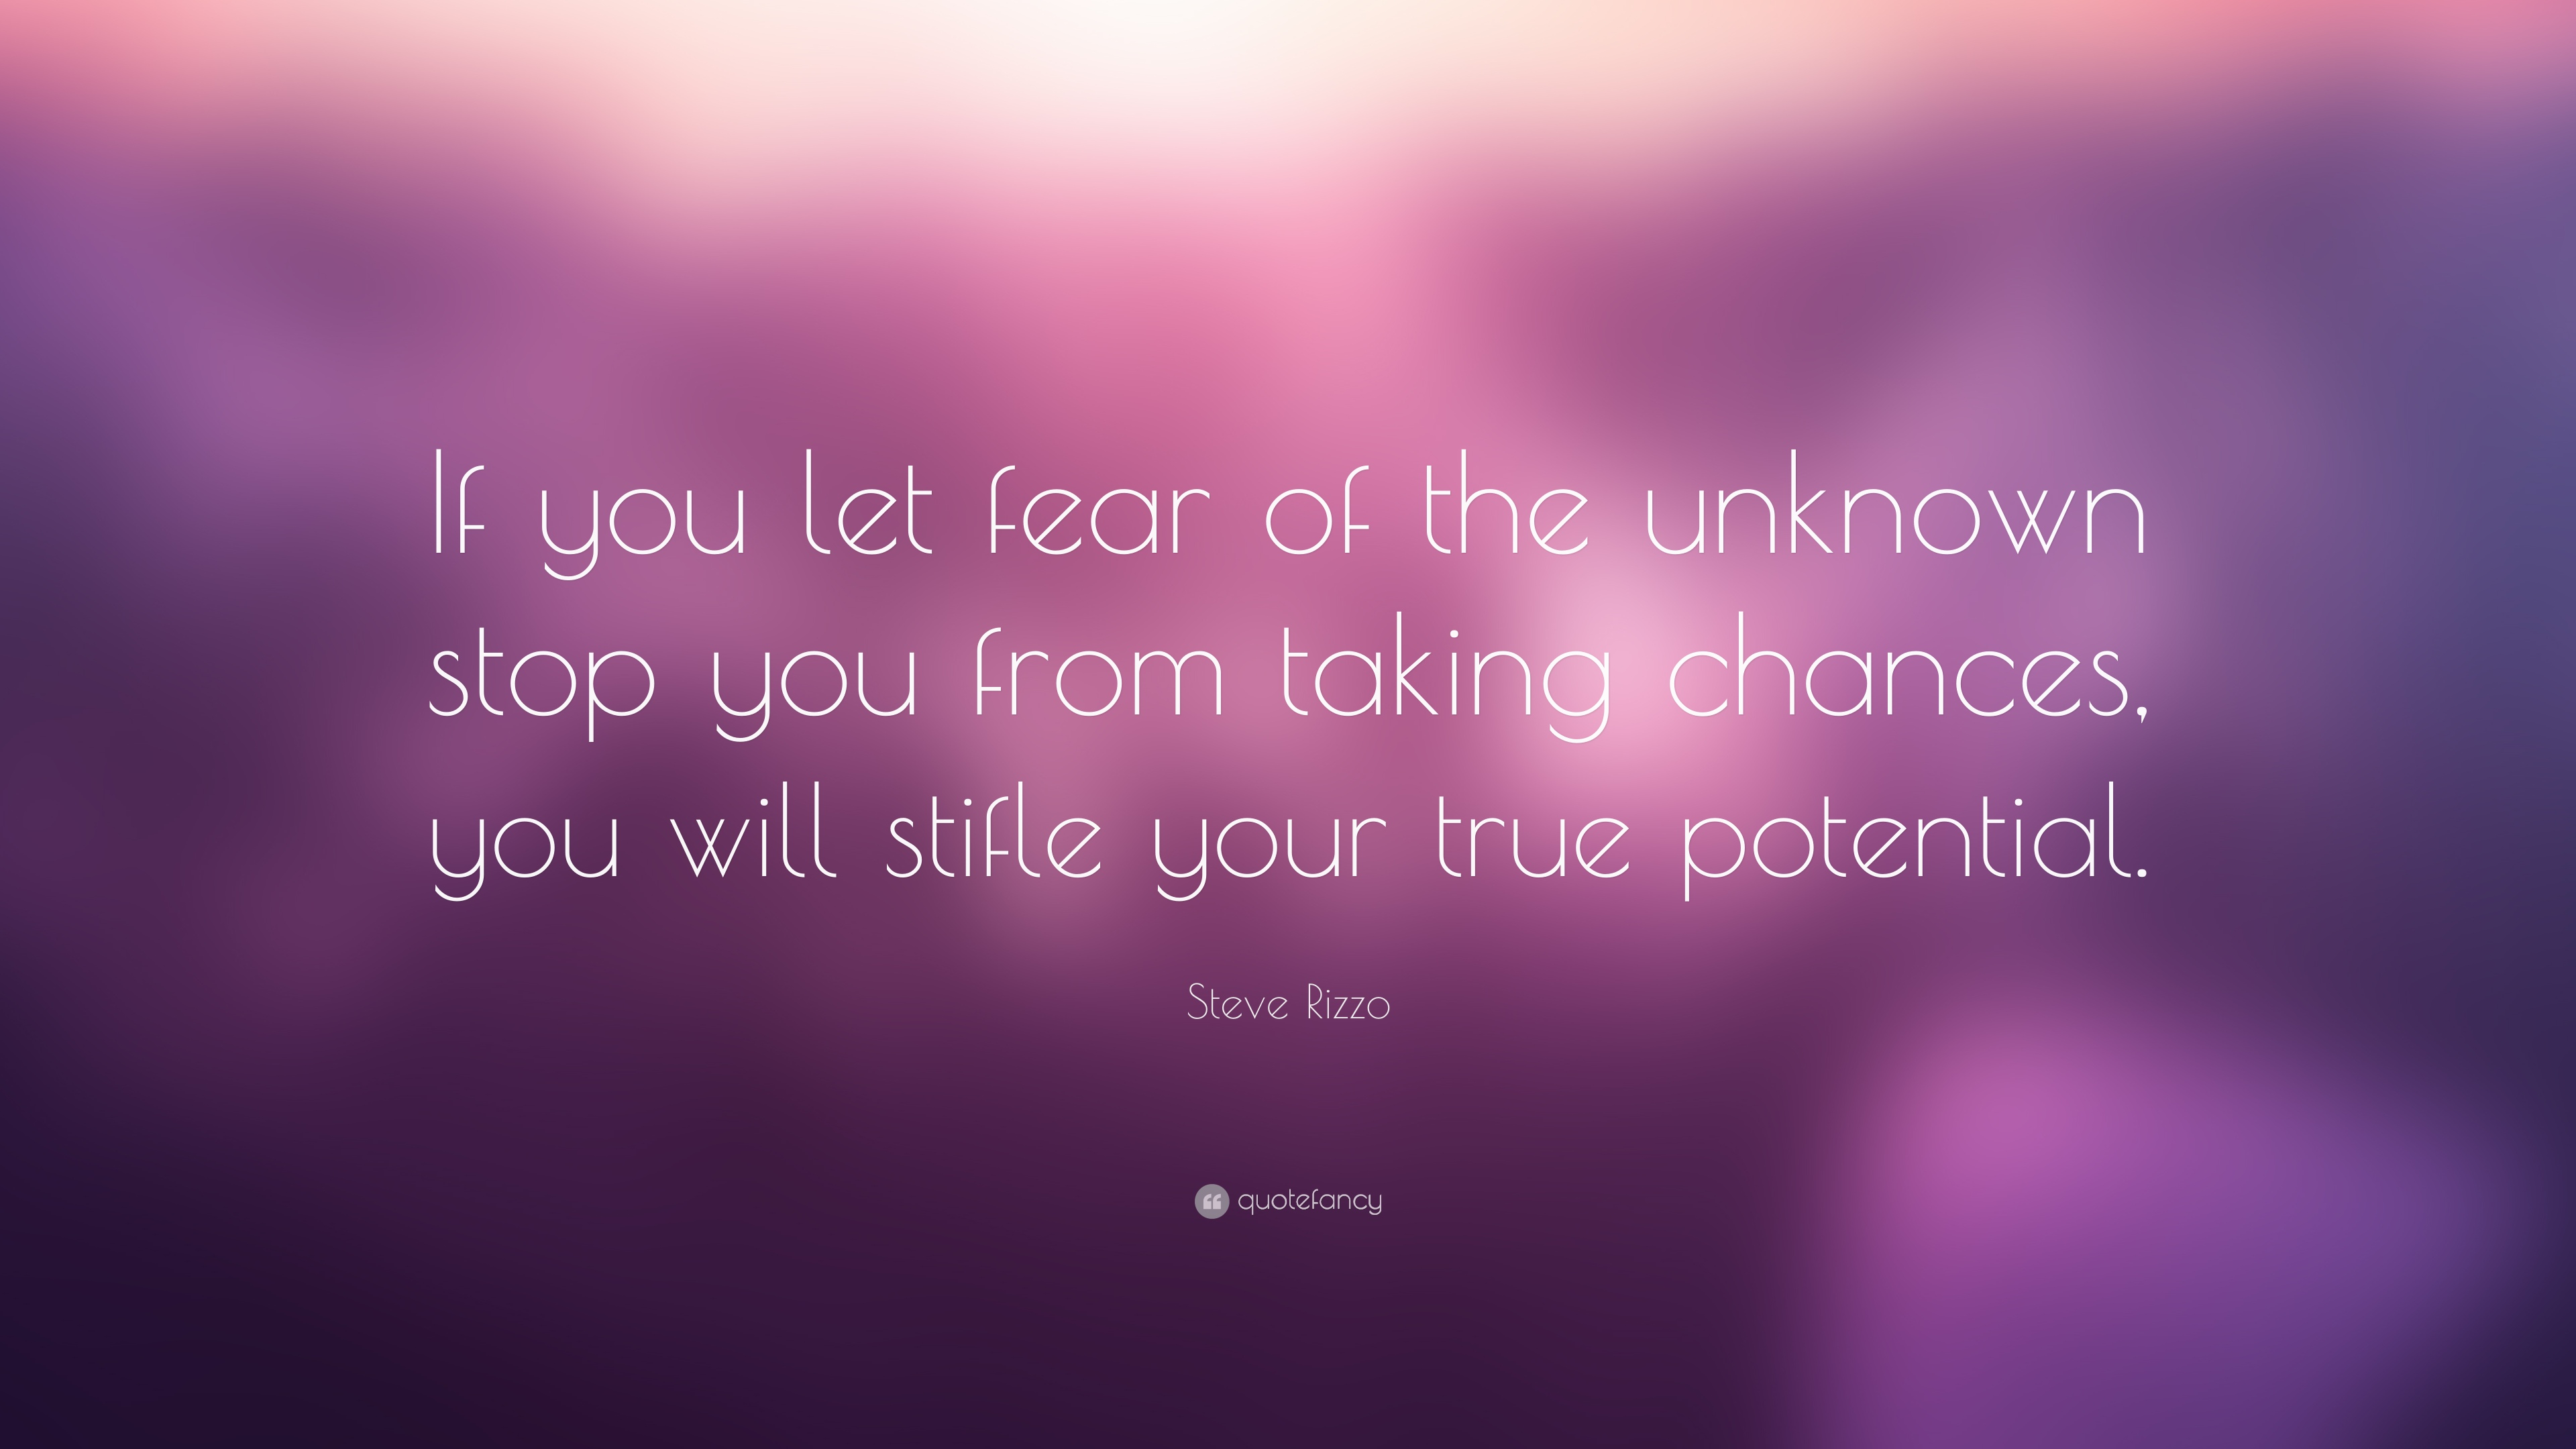 Steve Rizzo Quote If You Let Fear Of The Unknown Stop You From